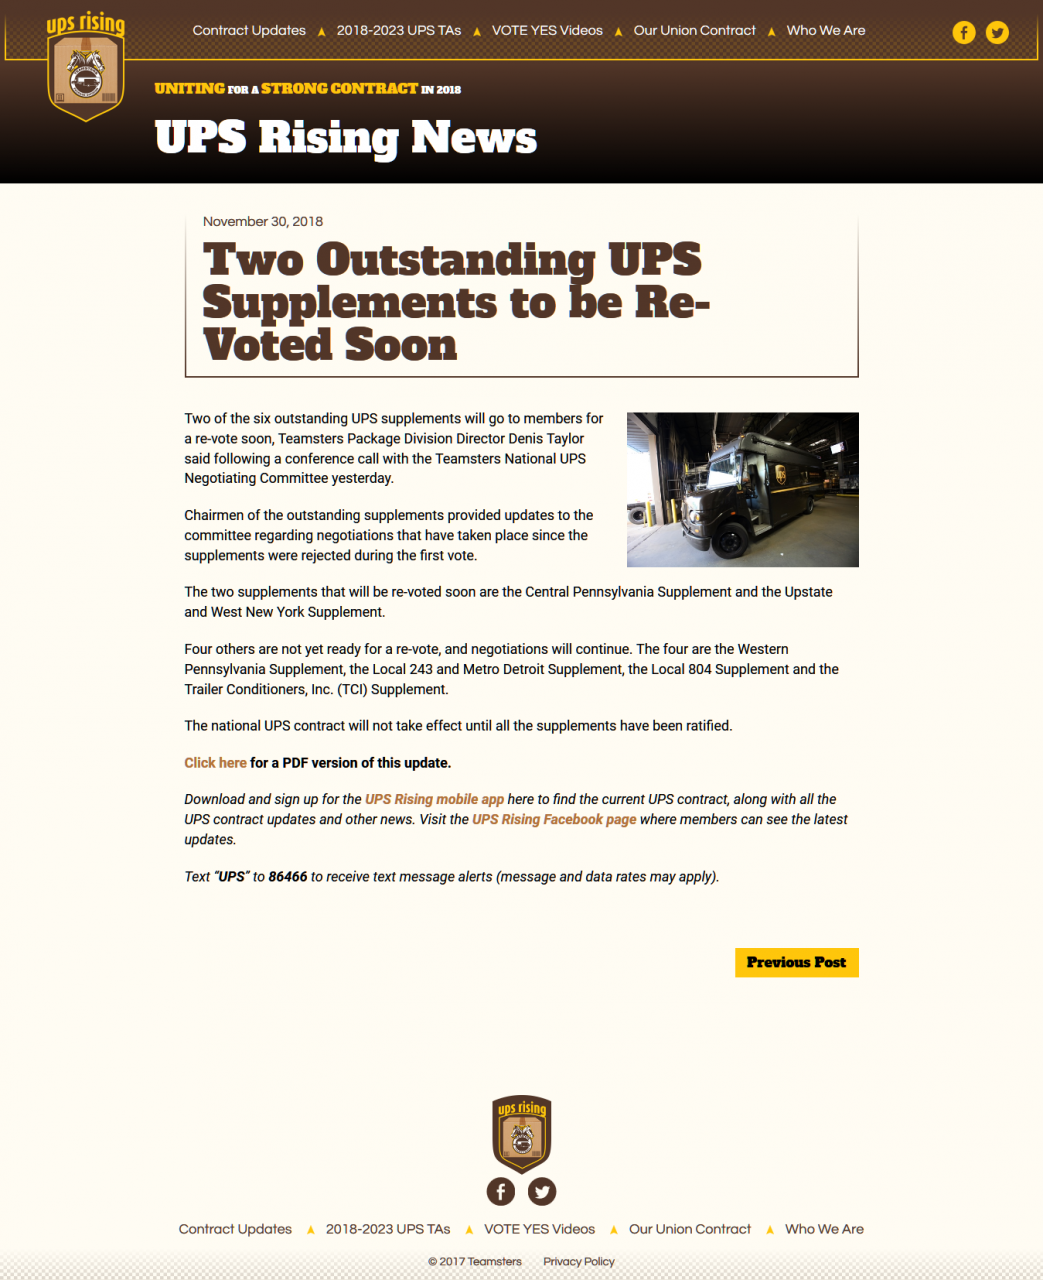 Screenshot_2018-12-01 Two Outstanding UPS Supplements to be Re-Voted Soon - UPS Rising.png